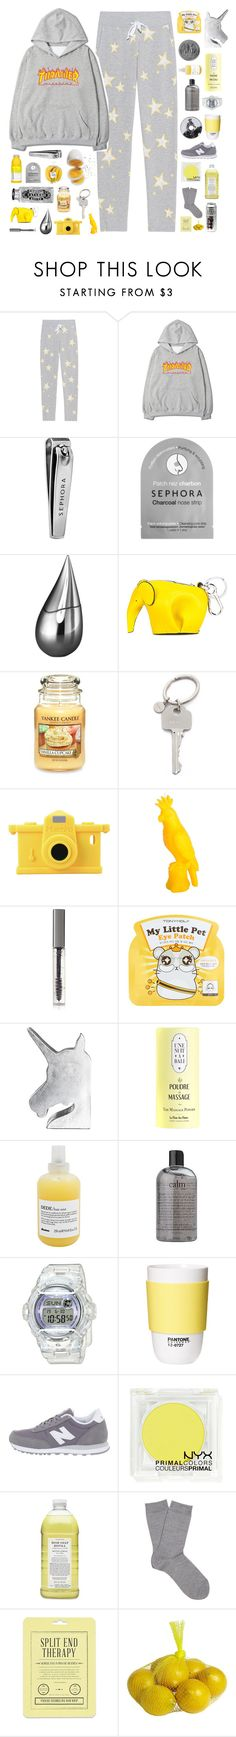 """""""♡ BUT KEEP iT DOWN ON THE LOW KEY"""" by wont-stop-loving-queen-rydel ❤ liked on Polyvore featuring Juvia, Sephora Collection, La Prairie, Loewe, Yankee Candle, Paul Smith, Moschino, Sunnylife, BBrowBar and Tony Moly"""